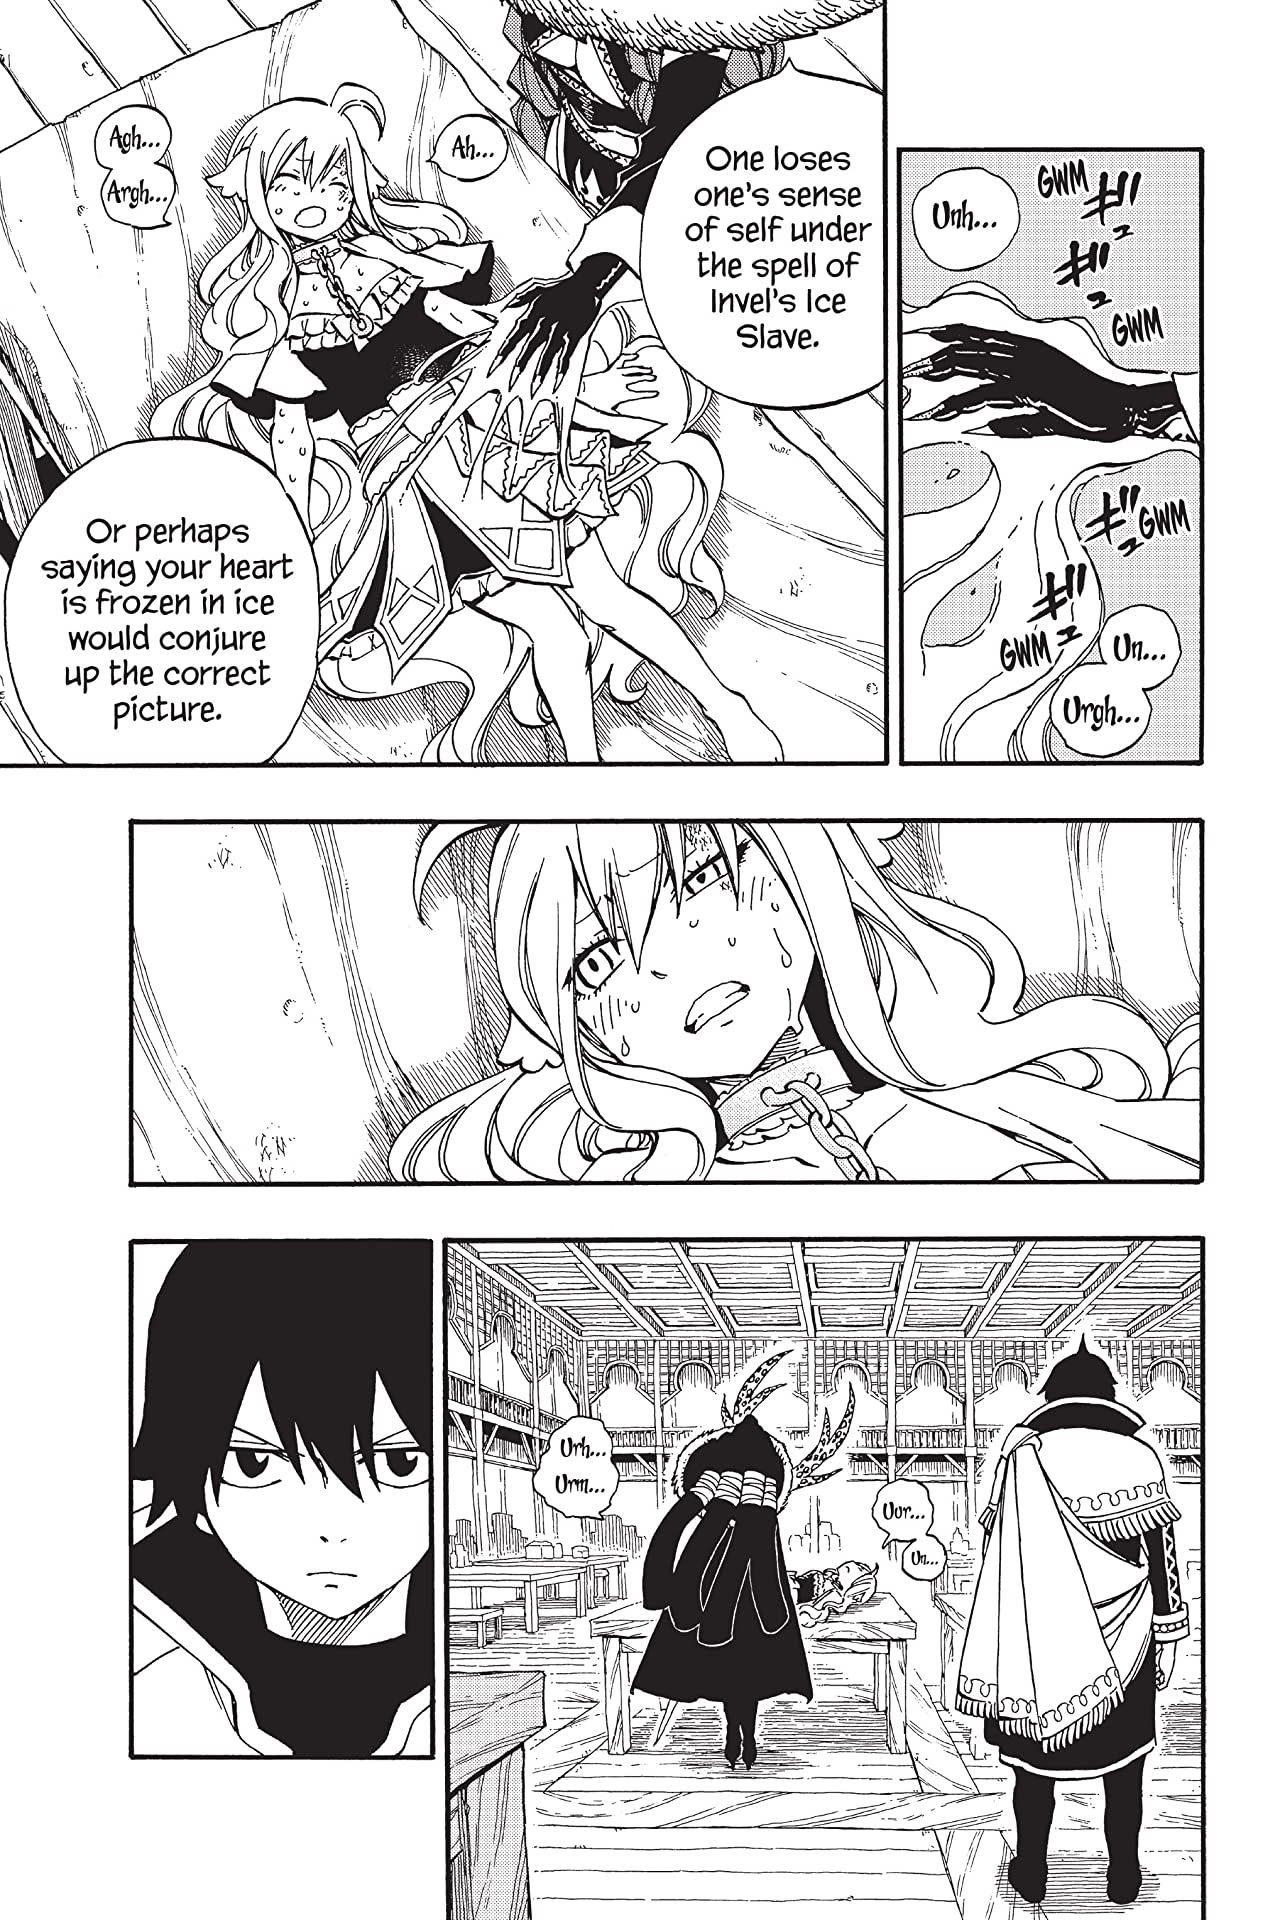 Fairy Tail #497